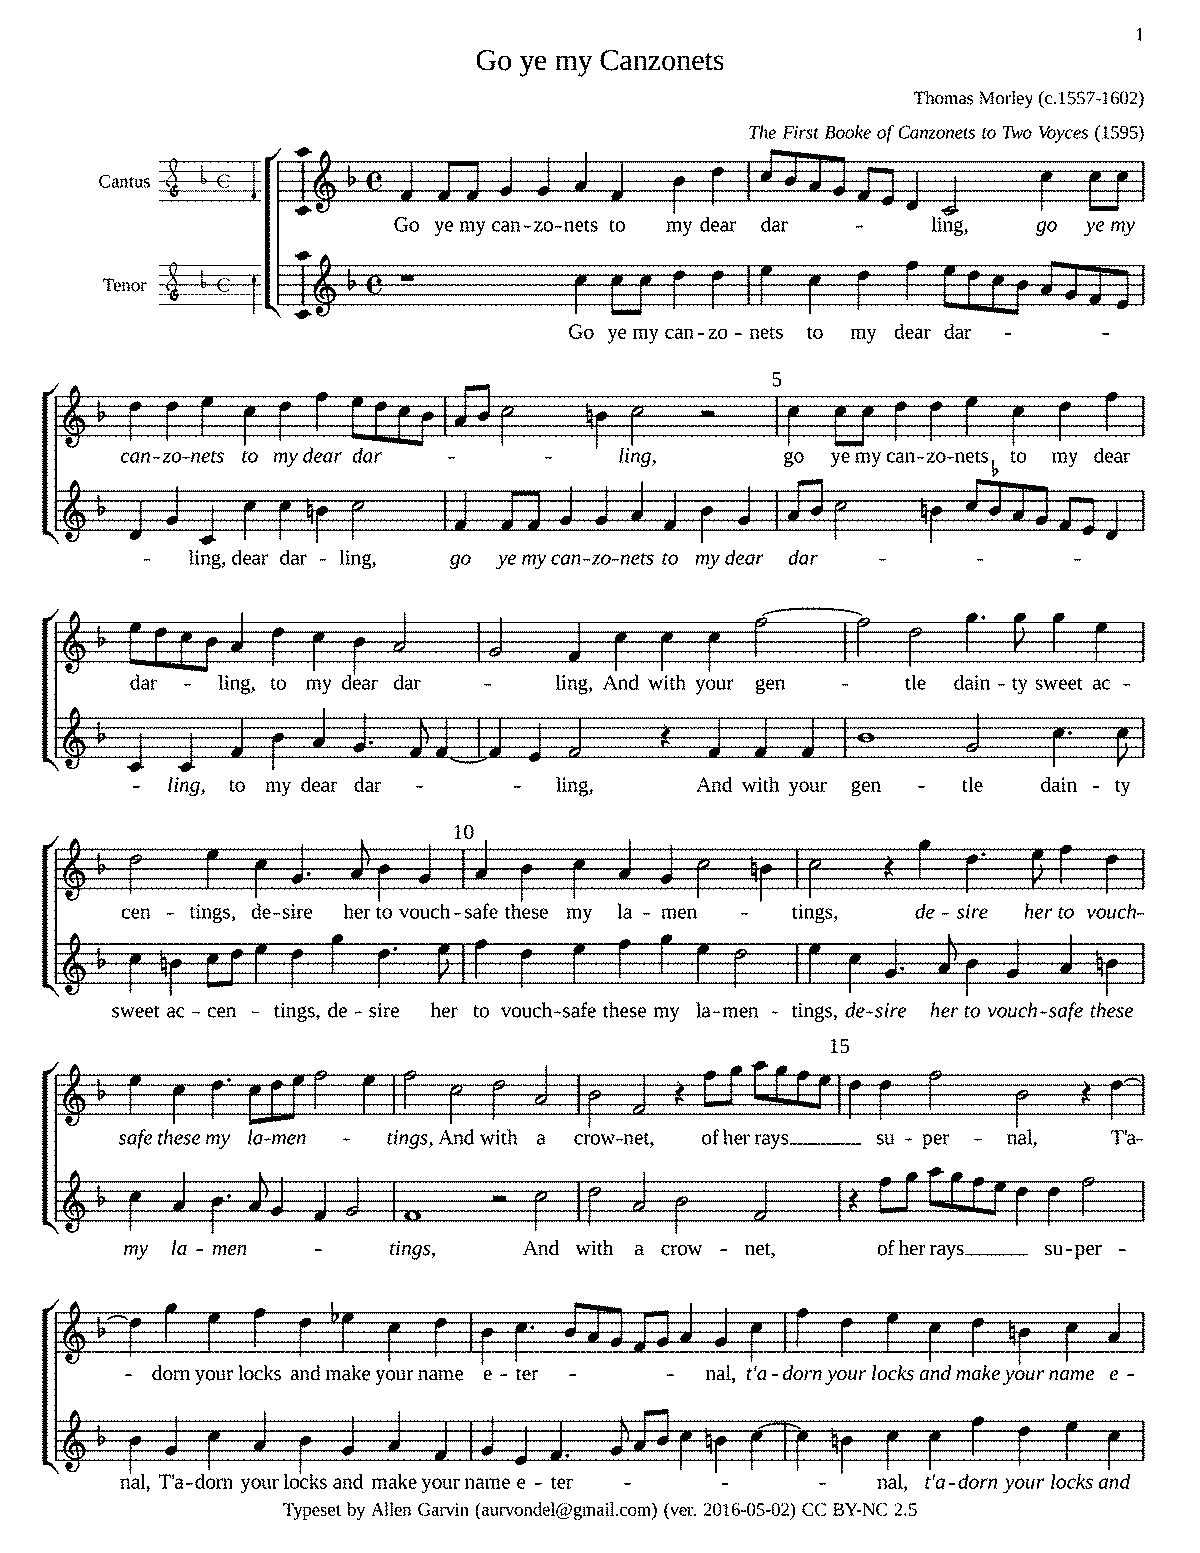 PMLP684270-01-go ye my canzonets---0-score.pdf